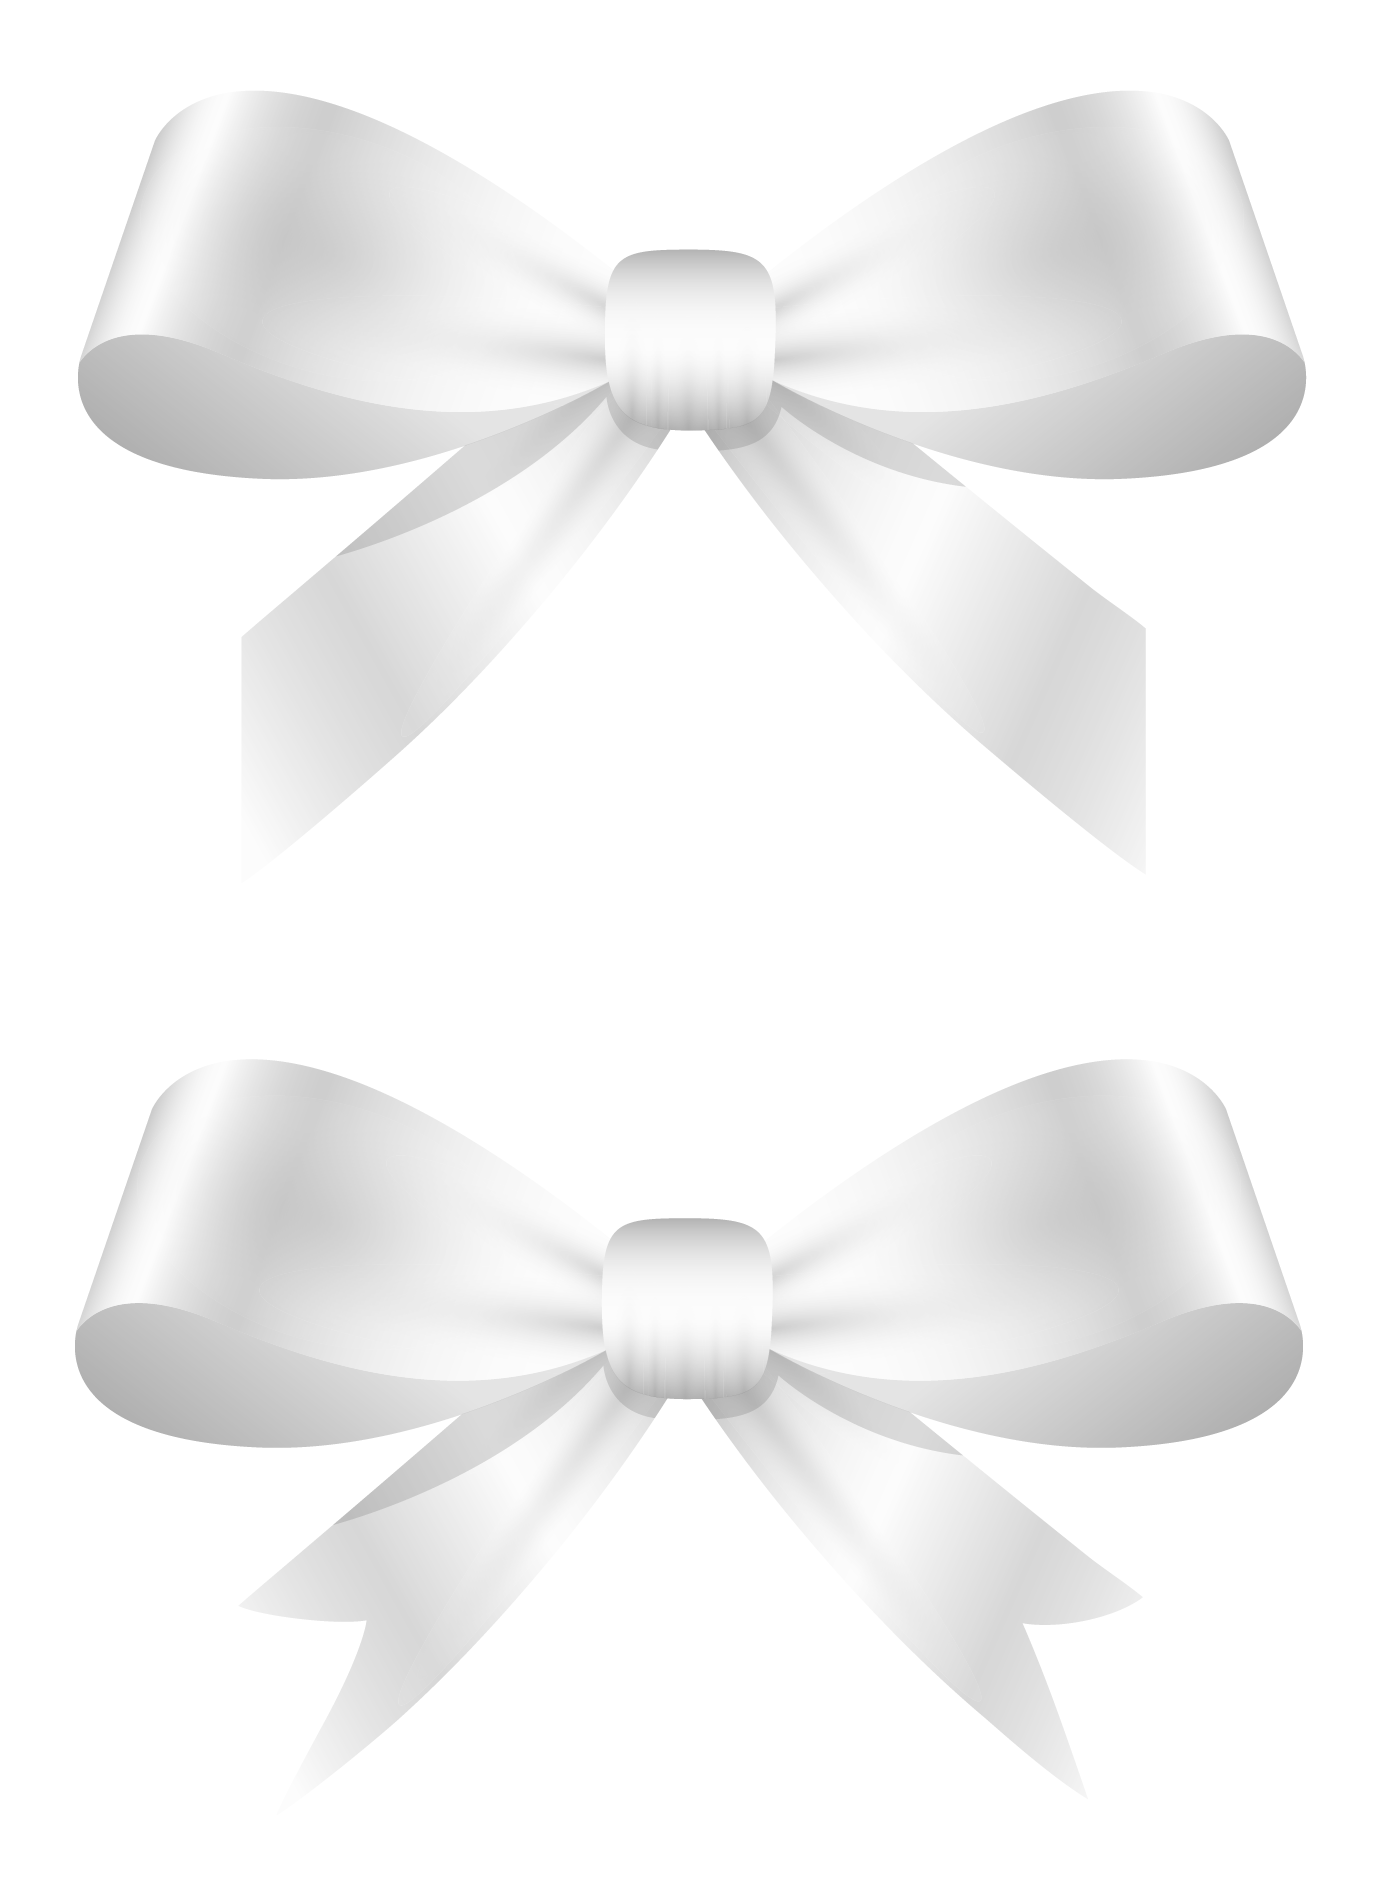 White bow with ribbon clipart clip art transparent library Pin by Ummuhan Yanbolu on Desenler | Bows, Clip art clip art transparent library